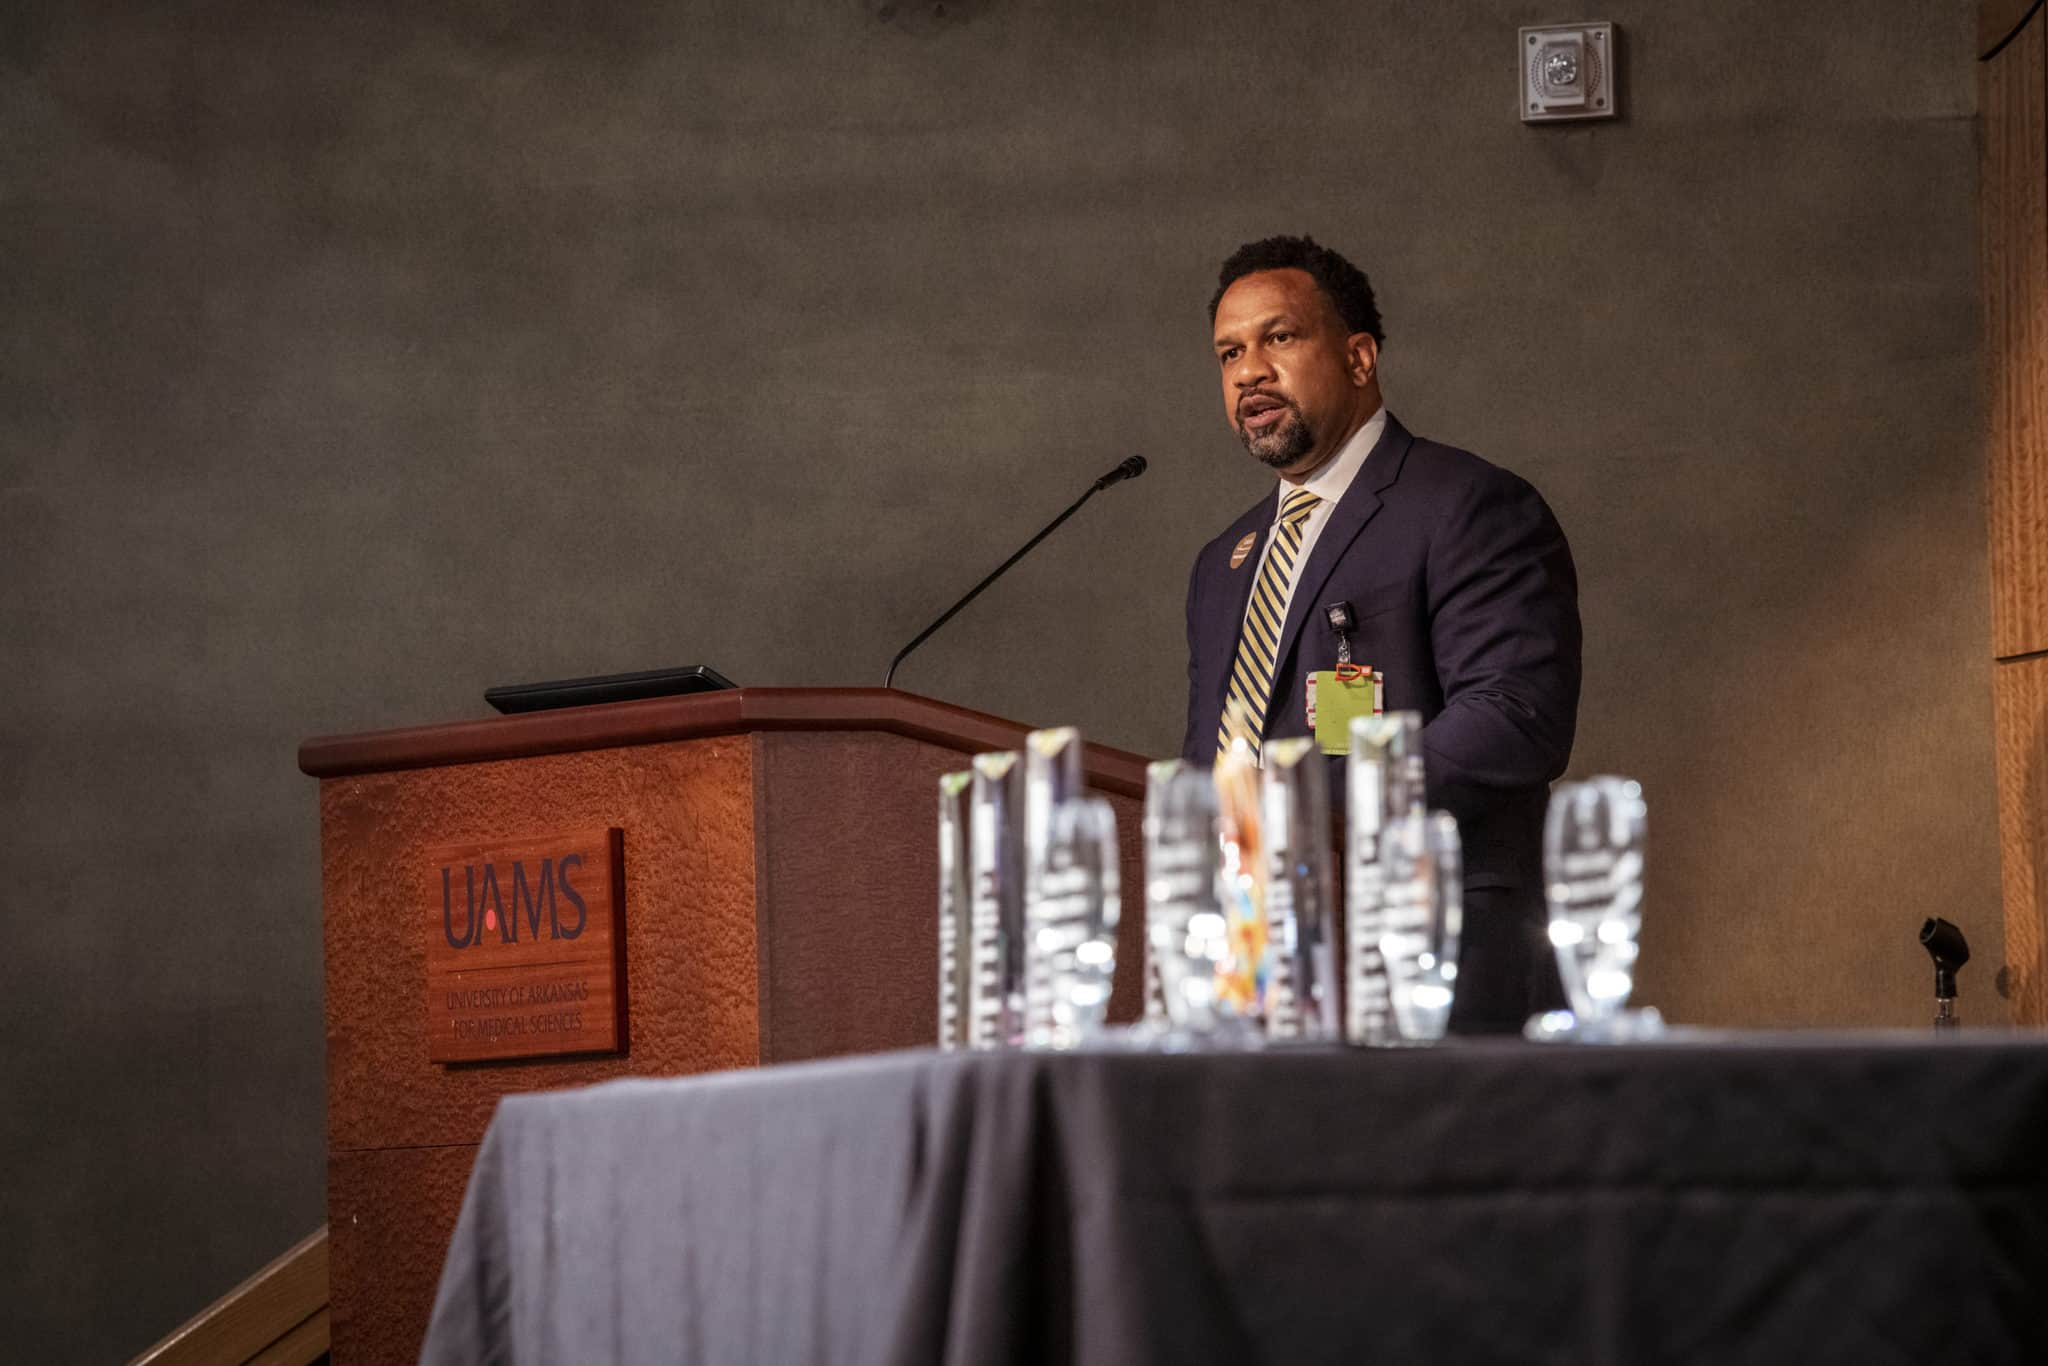 Brian Gittens, Ed.D., vice chancellor for diversity, equity and inclusion, delivers his State of Diversity and Inclusion address, with the Dr. Edith Irby Jones Excellence in Diversity and Inclusion Awards in the foreground.